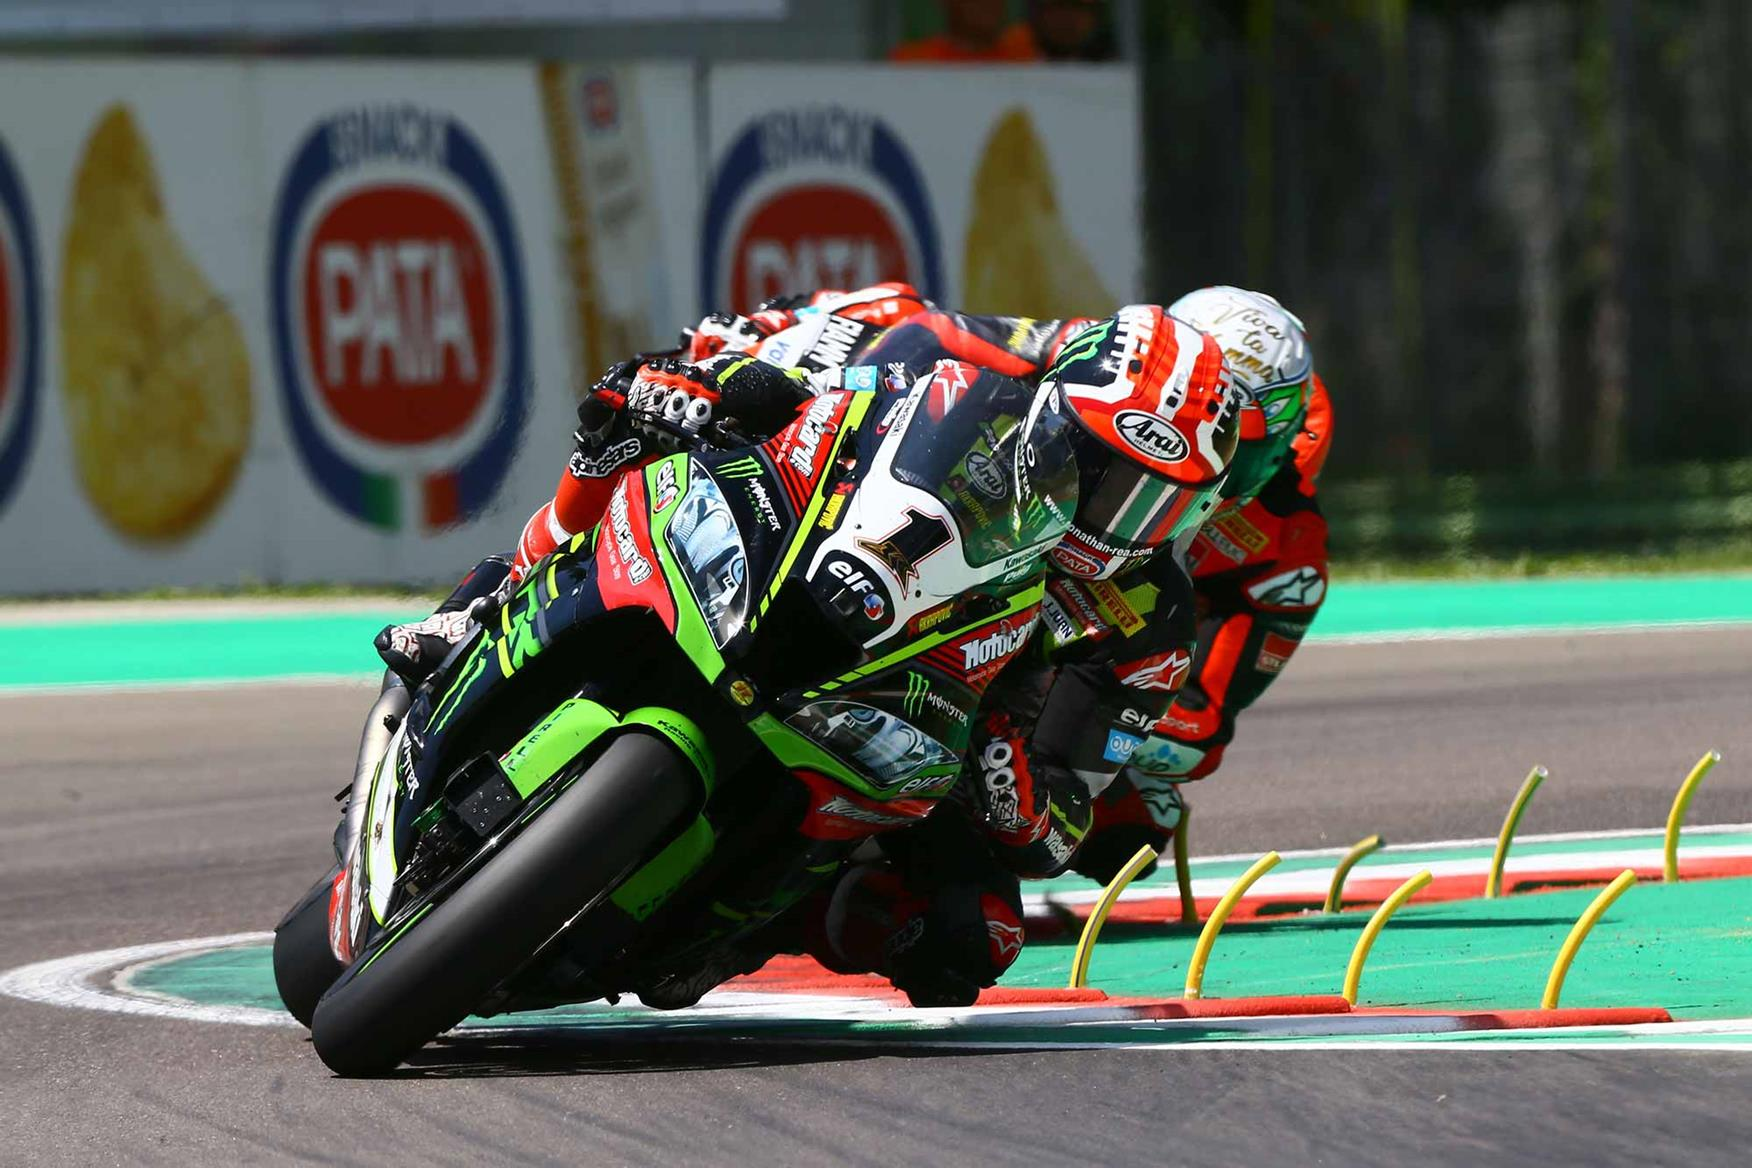 Rea takes a corner at Imola